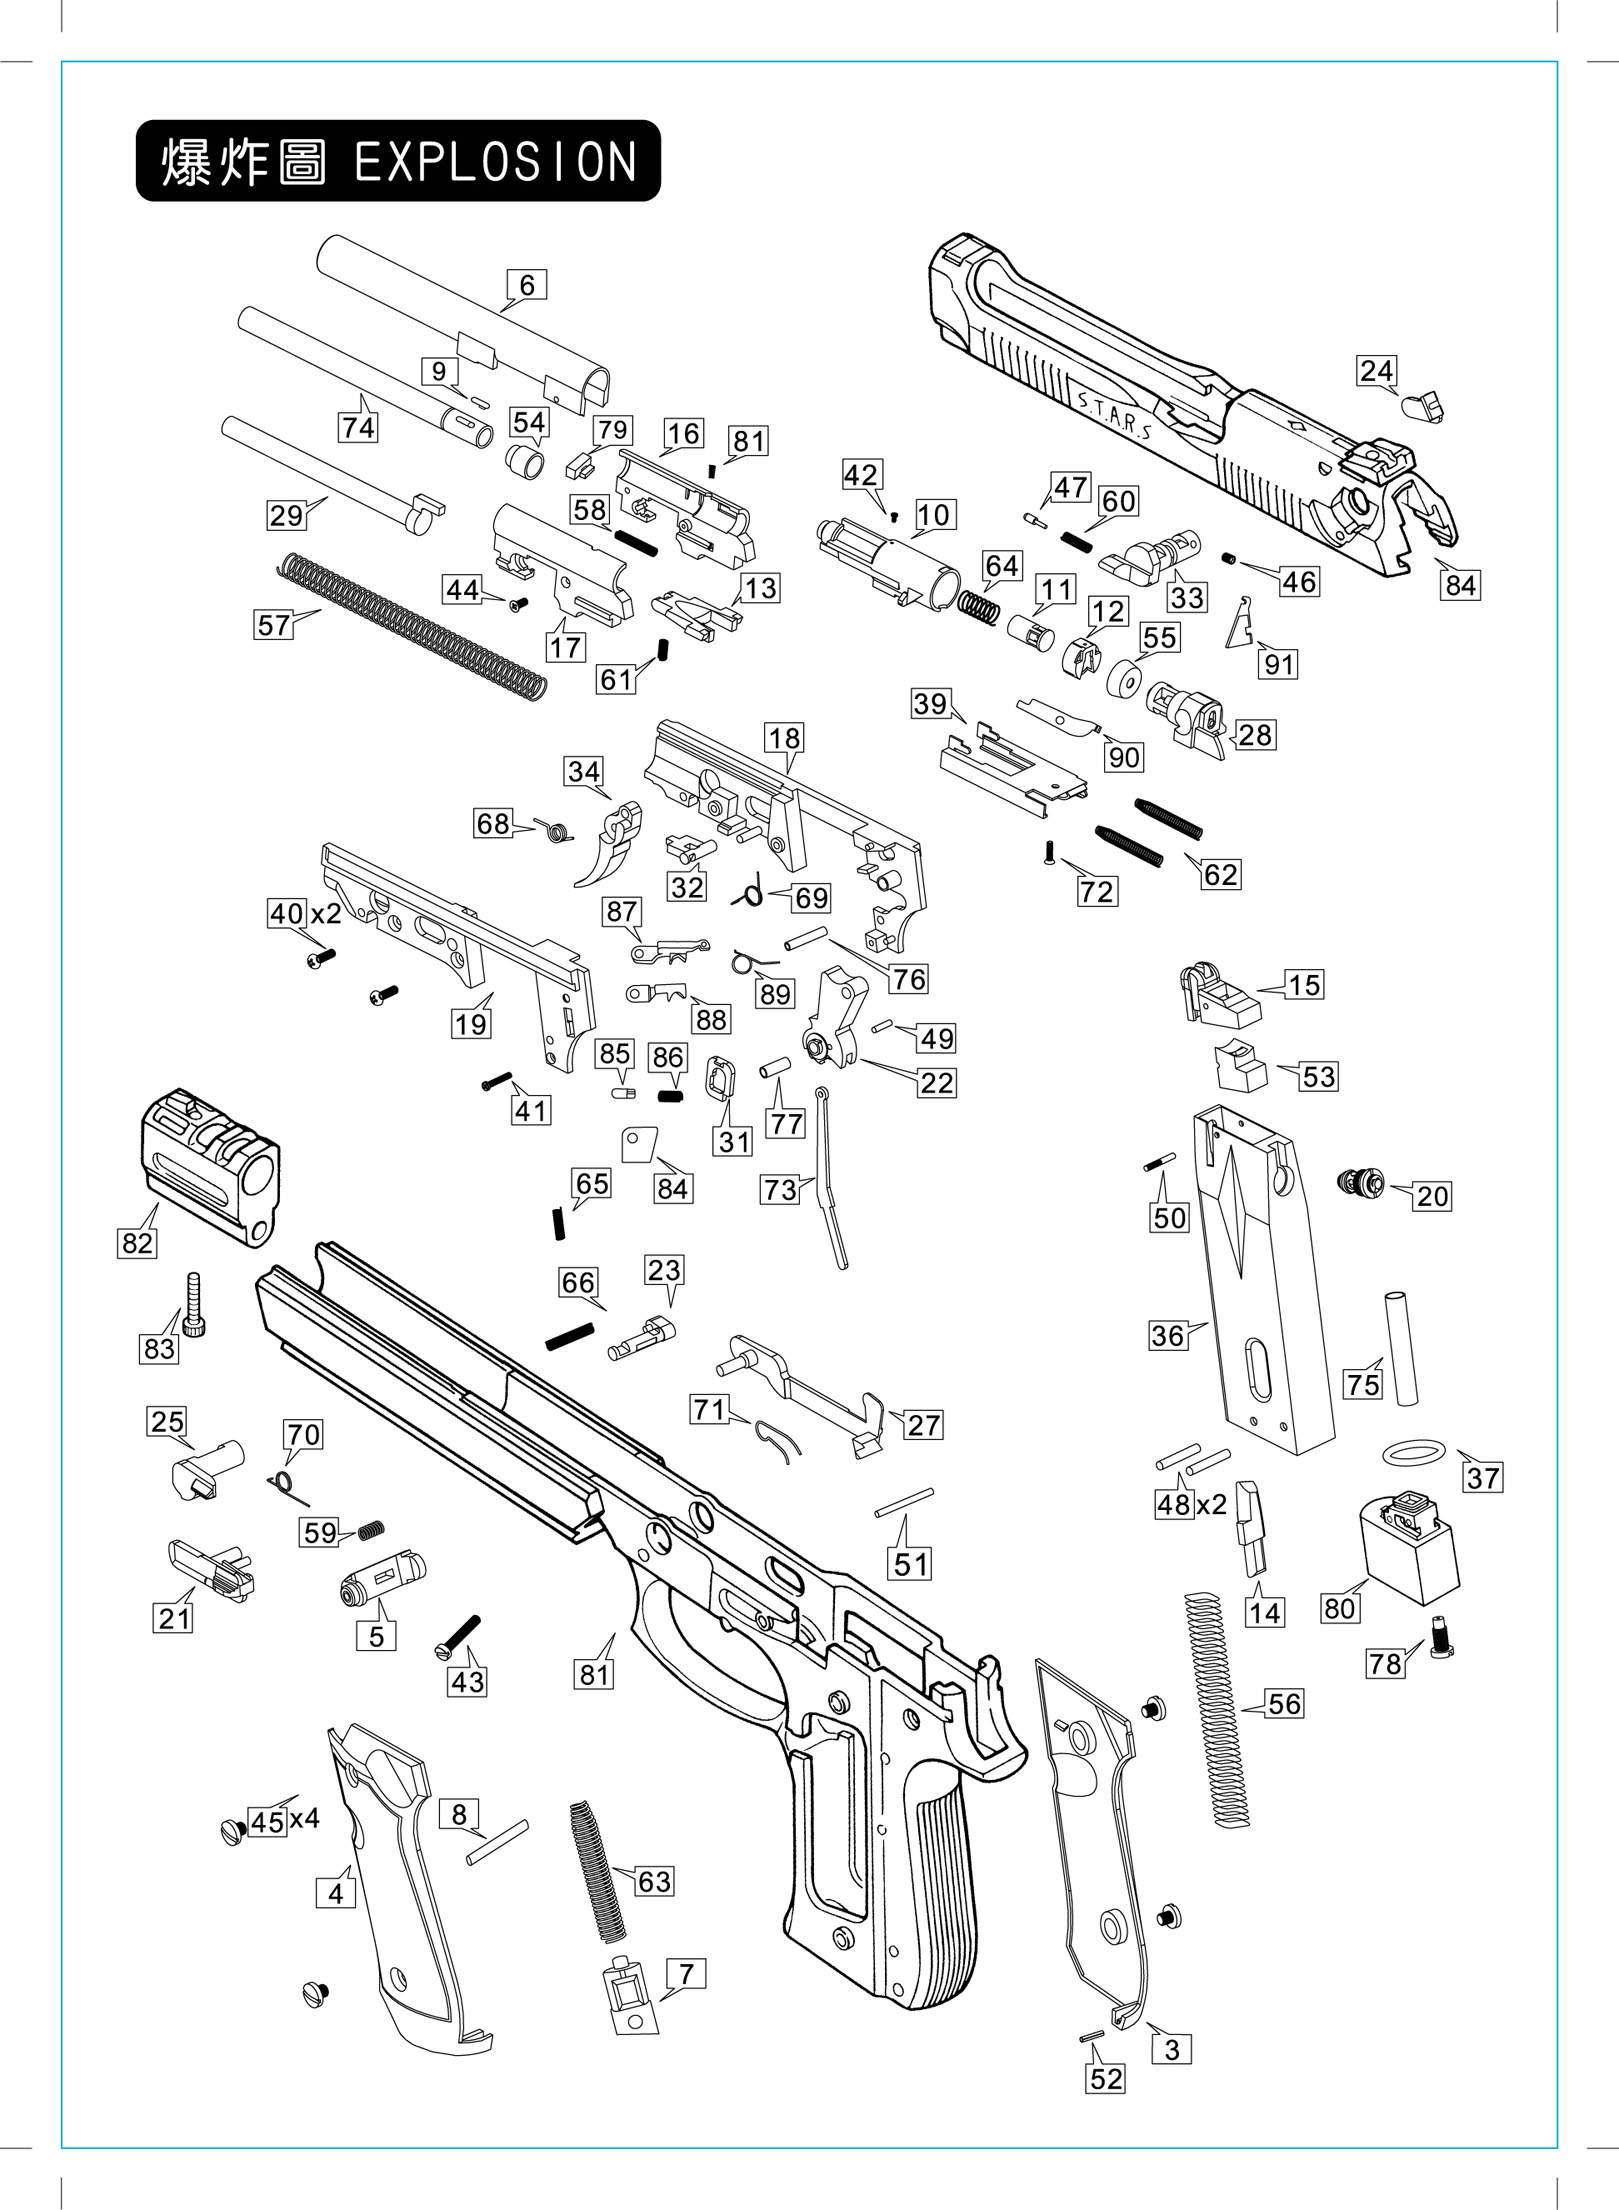 m14 parts diagram 2 way splitter update we culturebee co download area tactical training international rh weairsoft com breakdown rifle exploded view